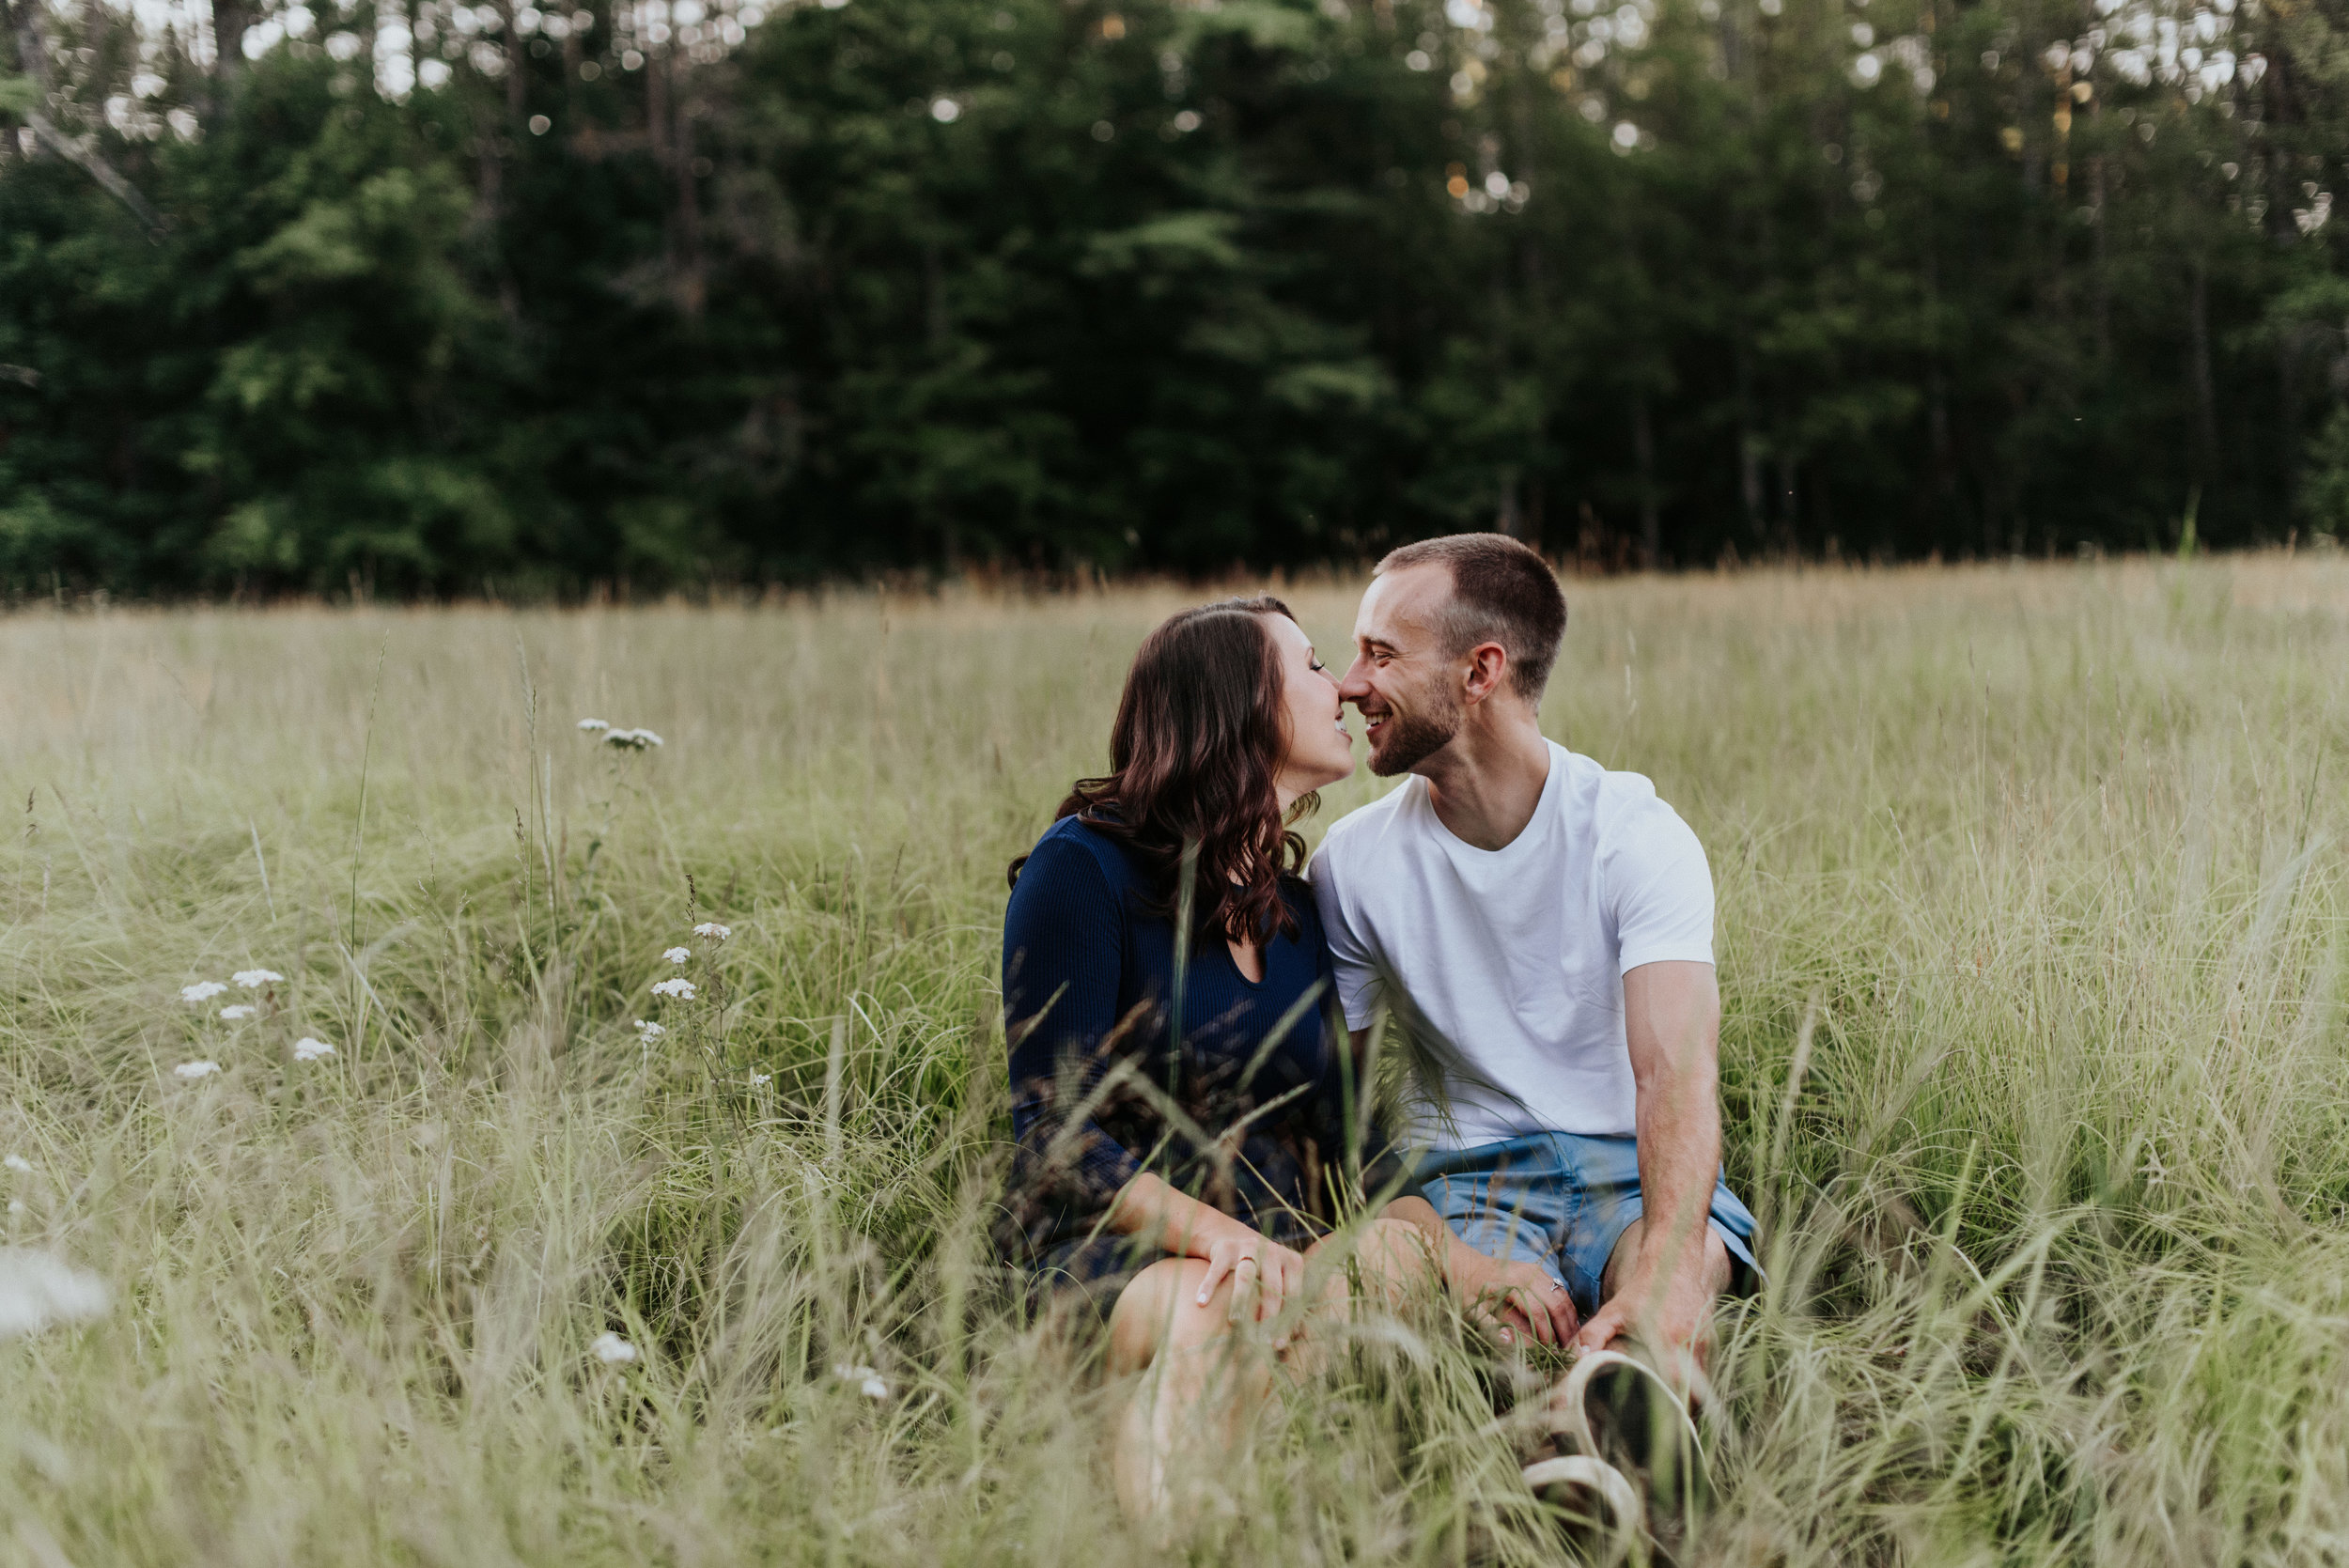 Amanda & Sean-Massachusetts-Forest Waterfront Engagement Session-Woodsy Outdoor Couples Session-Photographer-188.jpg